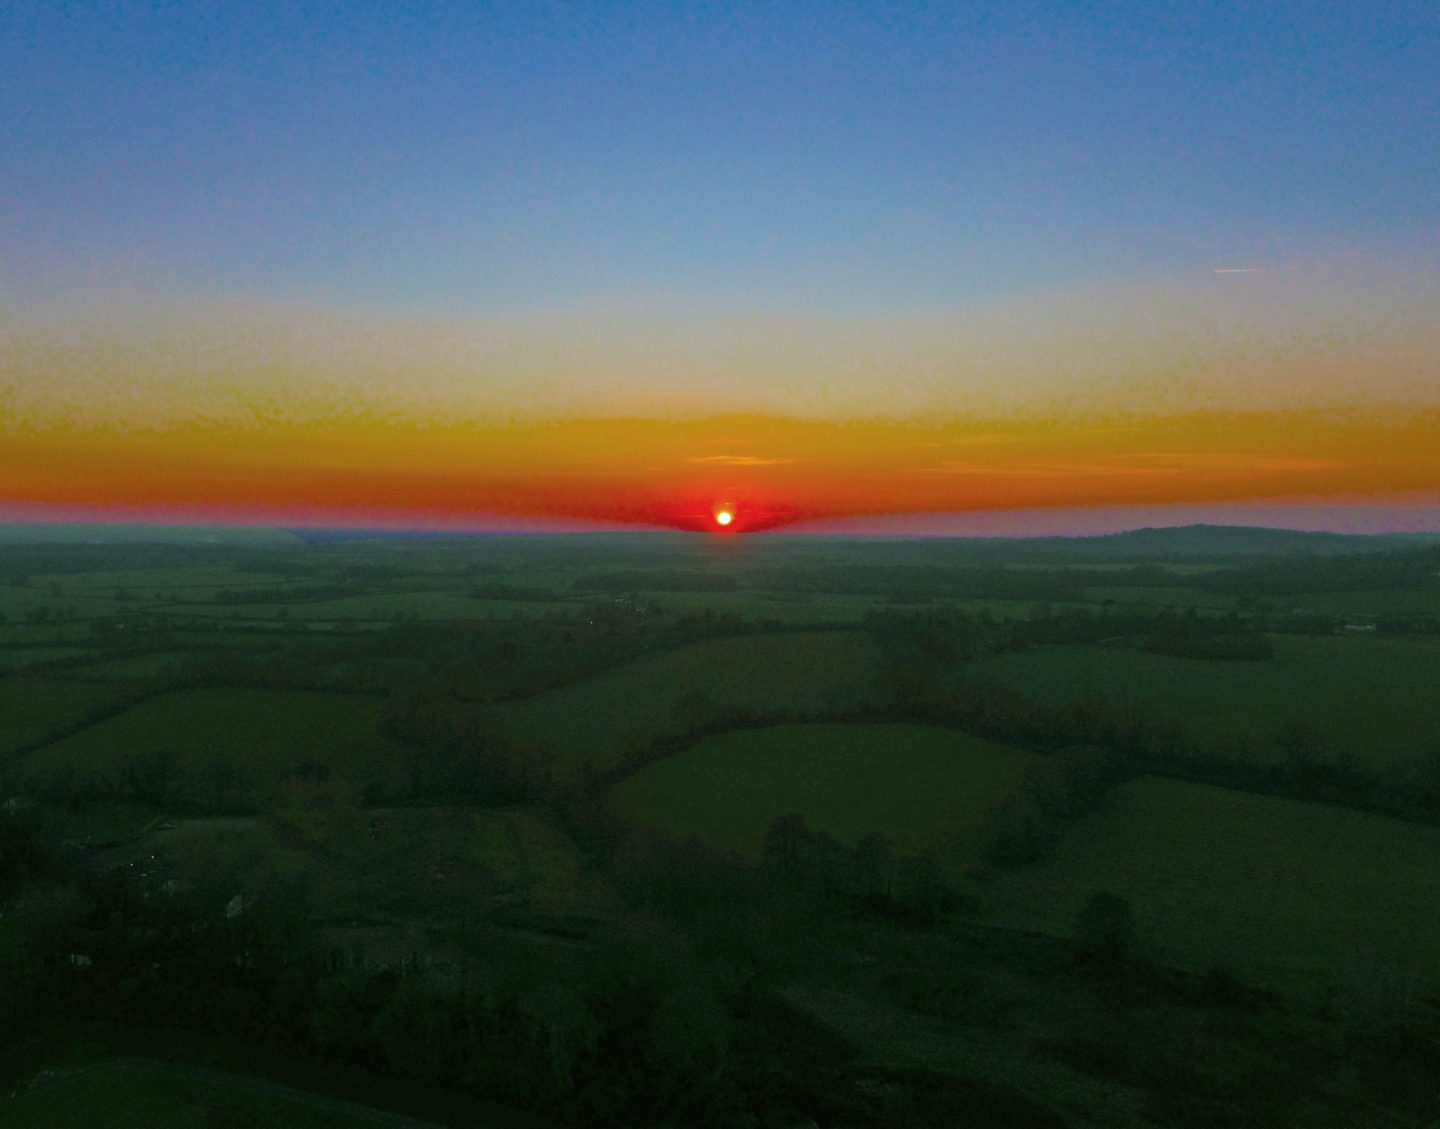 Weald of Kent, drone photography, drone photo, DJI Phantom, photography, photo fun, dadbloguk, dadbloguk.com, dadbloguk, uk dad blogger,